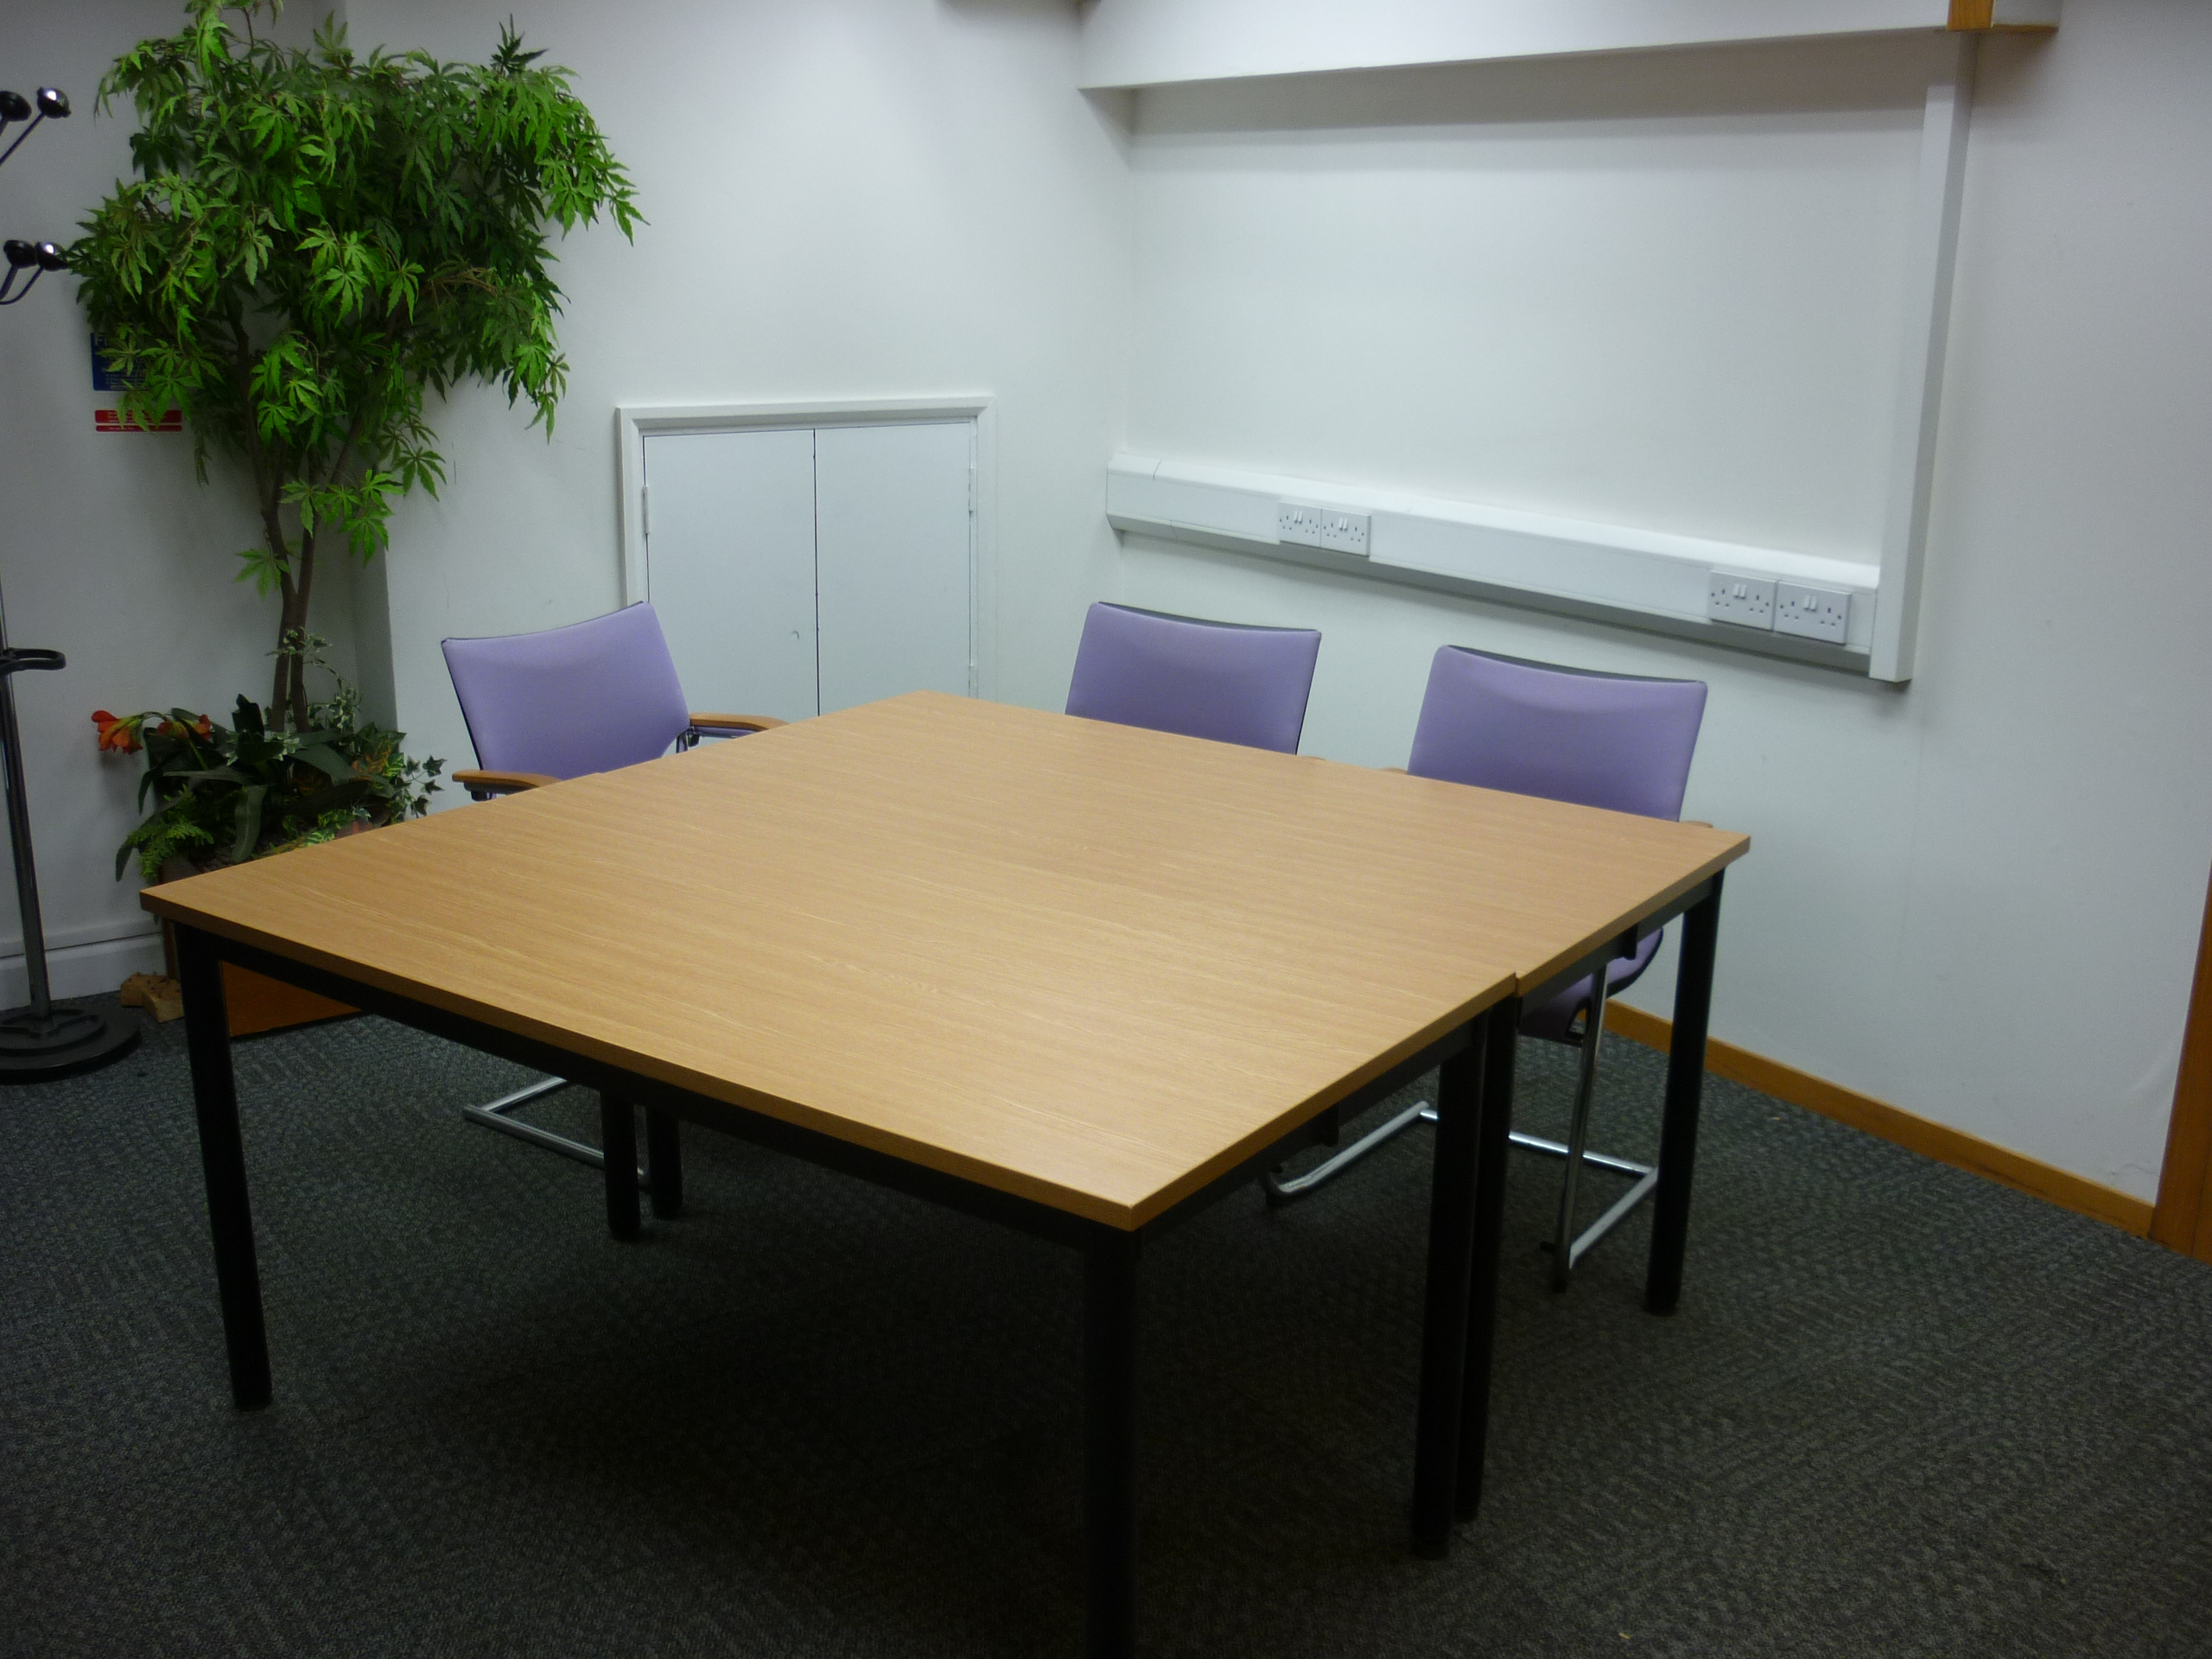 Harley Axis 1500x750mm beech foldaway conference tables